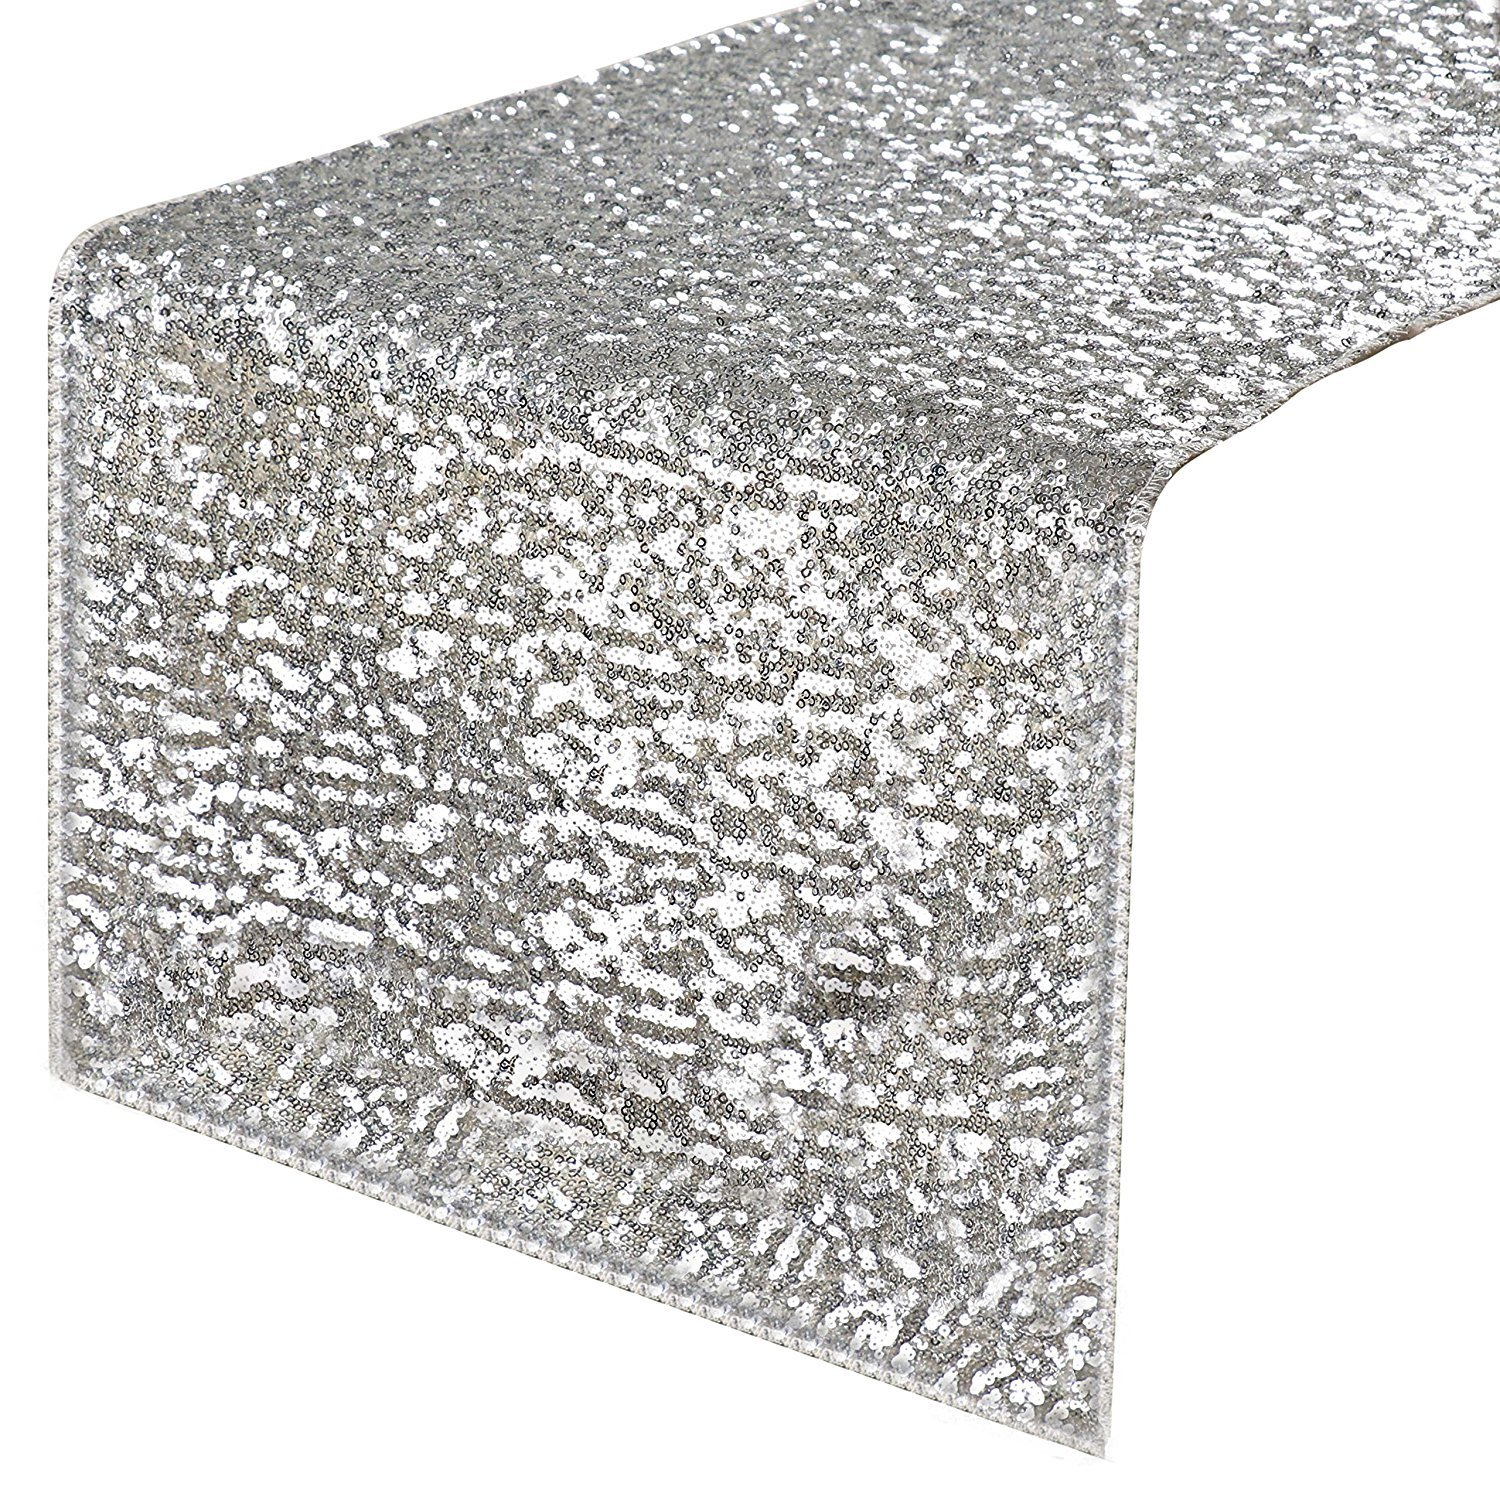 PONY DANCE Sequins Table Runner - Rectangular Sparkling Party/Wedding/Holiday Table Runners for Banquet Event Dinner Decoration Christmas Home Decor, 14'' x 108'', Silver